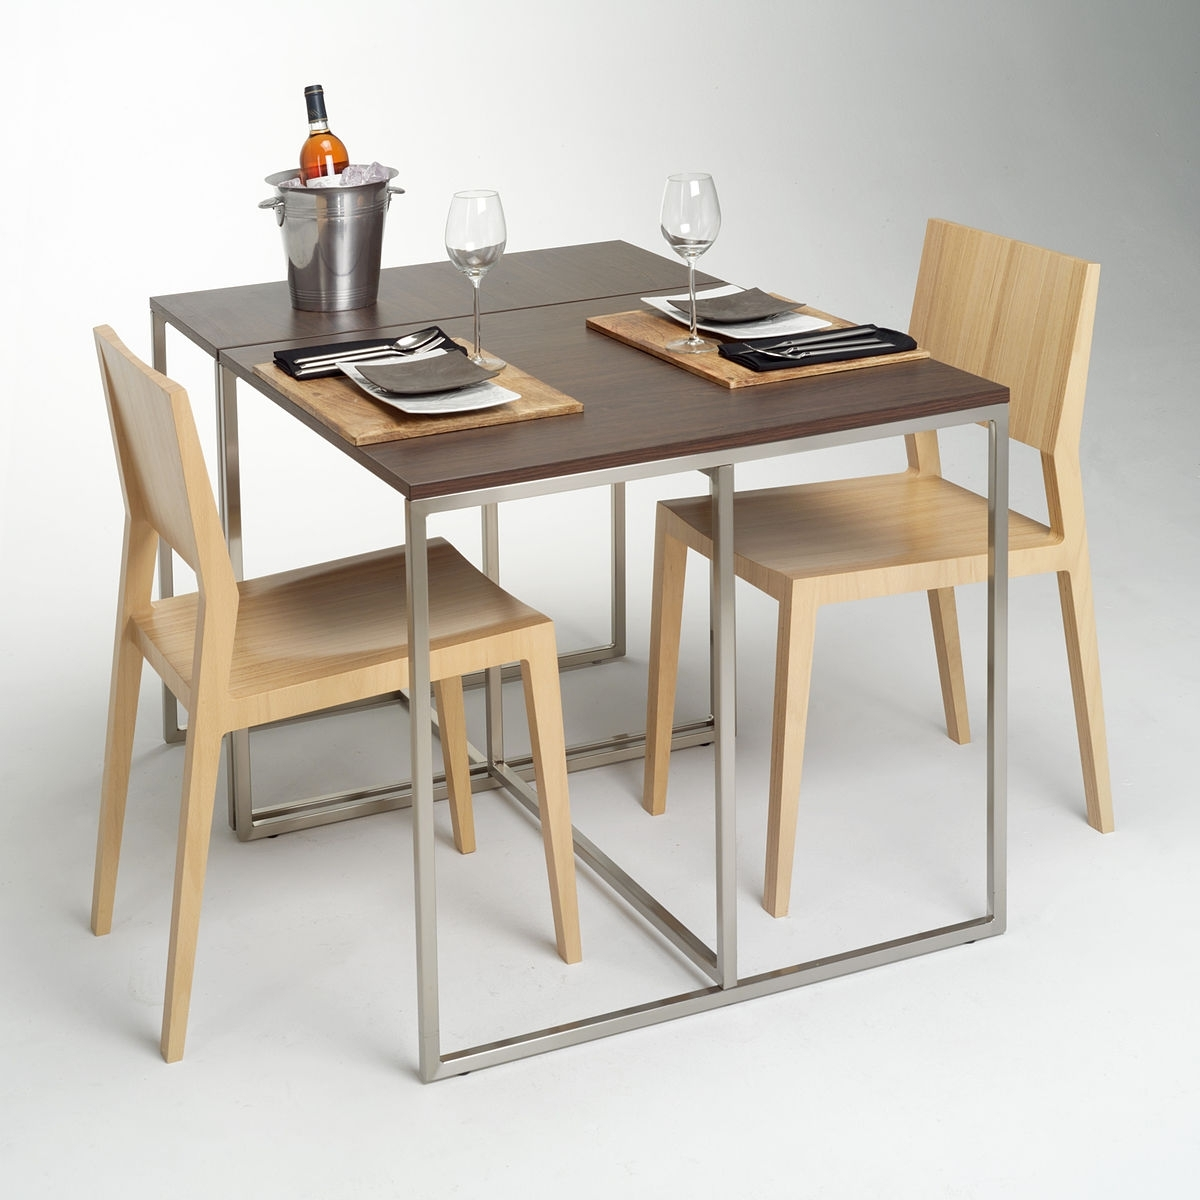 Non Wood Dining Tables Throughout Most Up To Date Furniture – Wikipedia (Gallery 12 of 25)